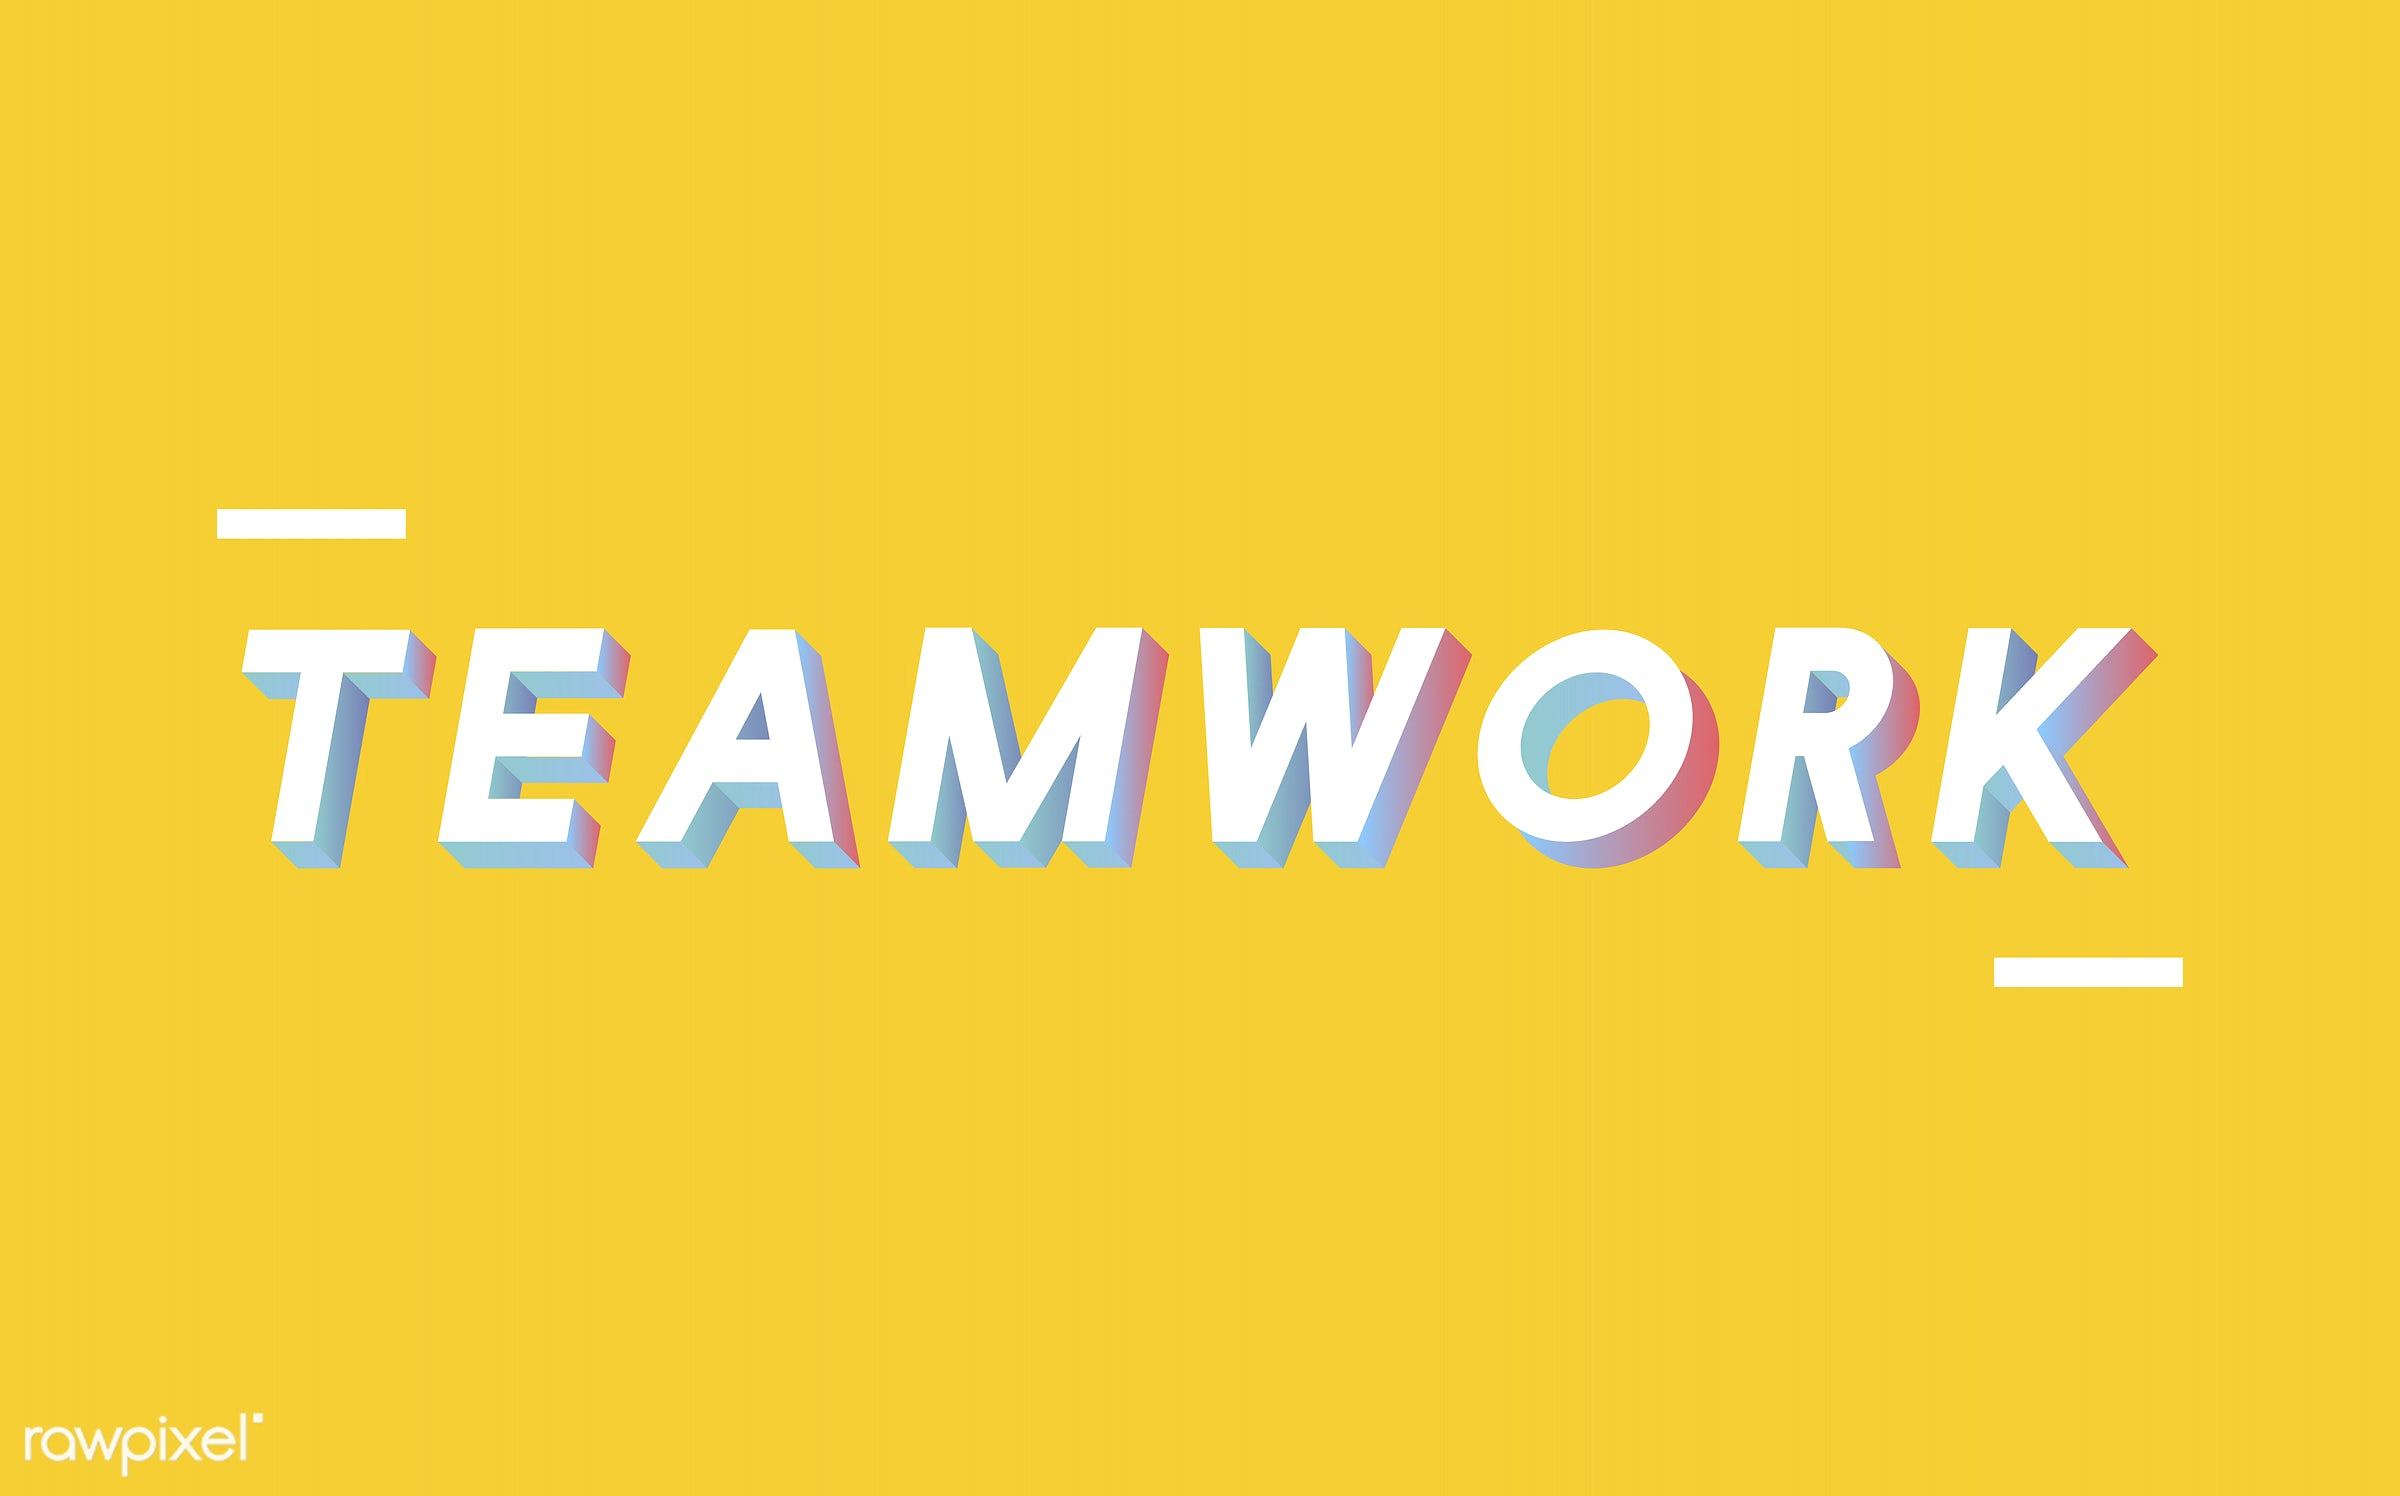 neon, colorful, 3d, three dimensional, vector, illustration, graphic, word, yellow, white, teamwork, team, collaboration,...